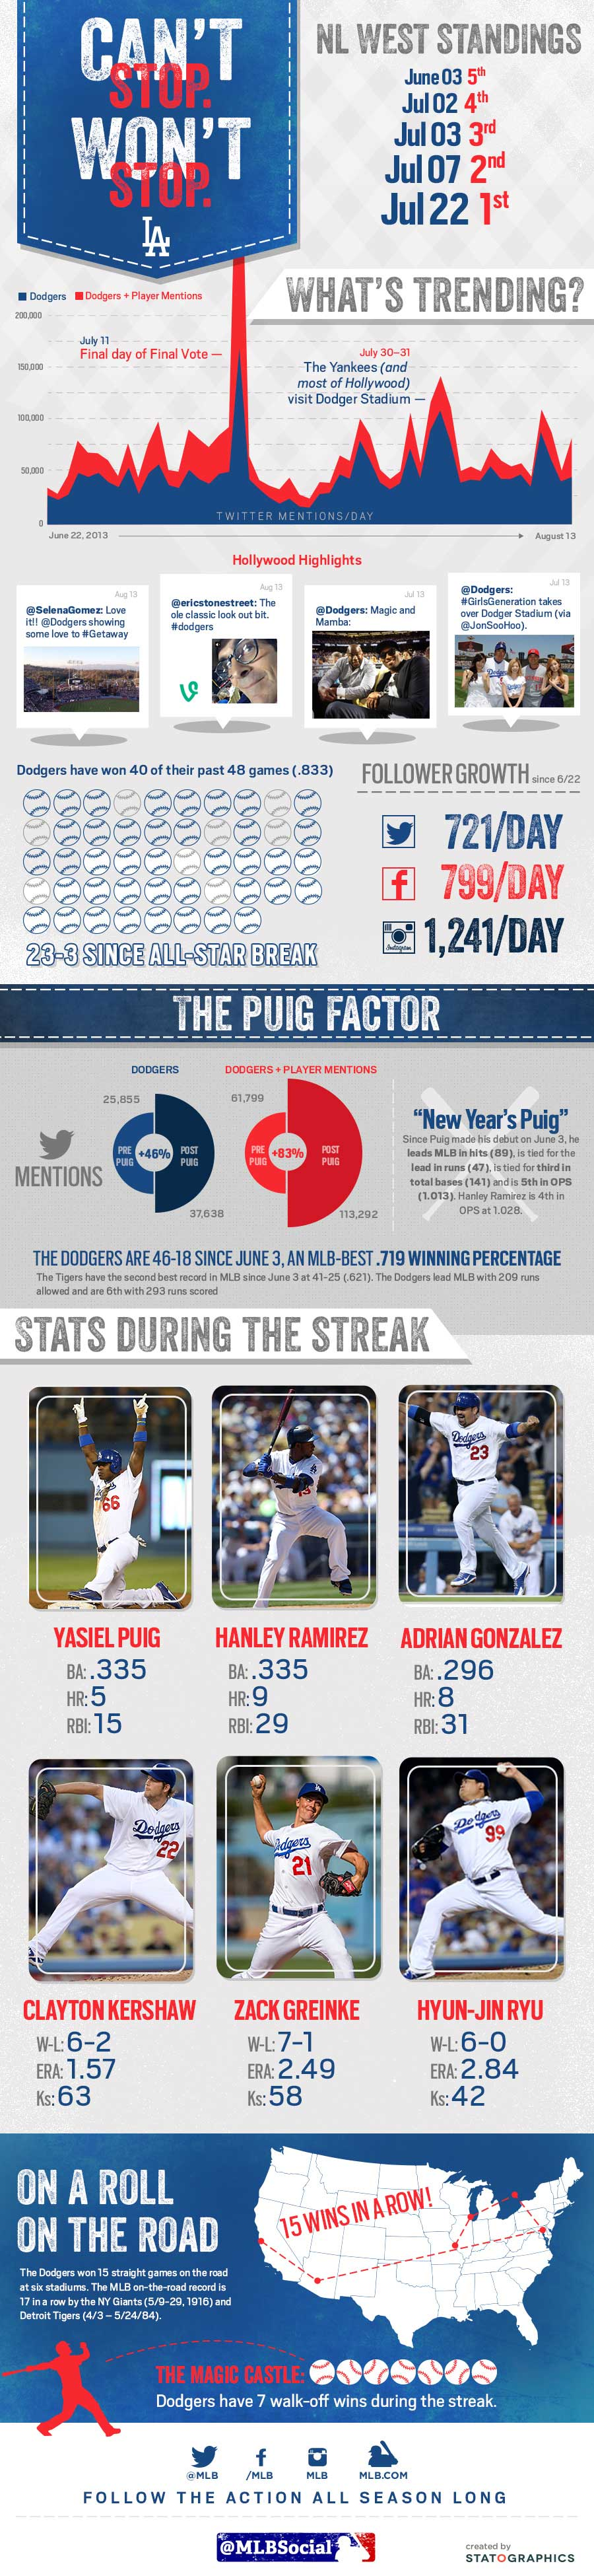 [INFOGRAPHIC] Can't stop. Won't stop... trending. #Dodgers historic run has been the talk of #MLB.